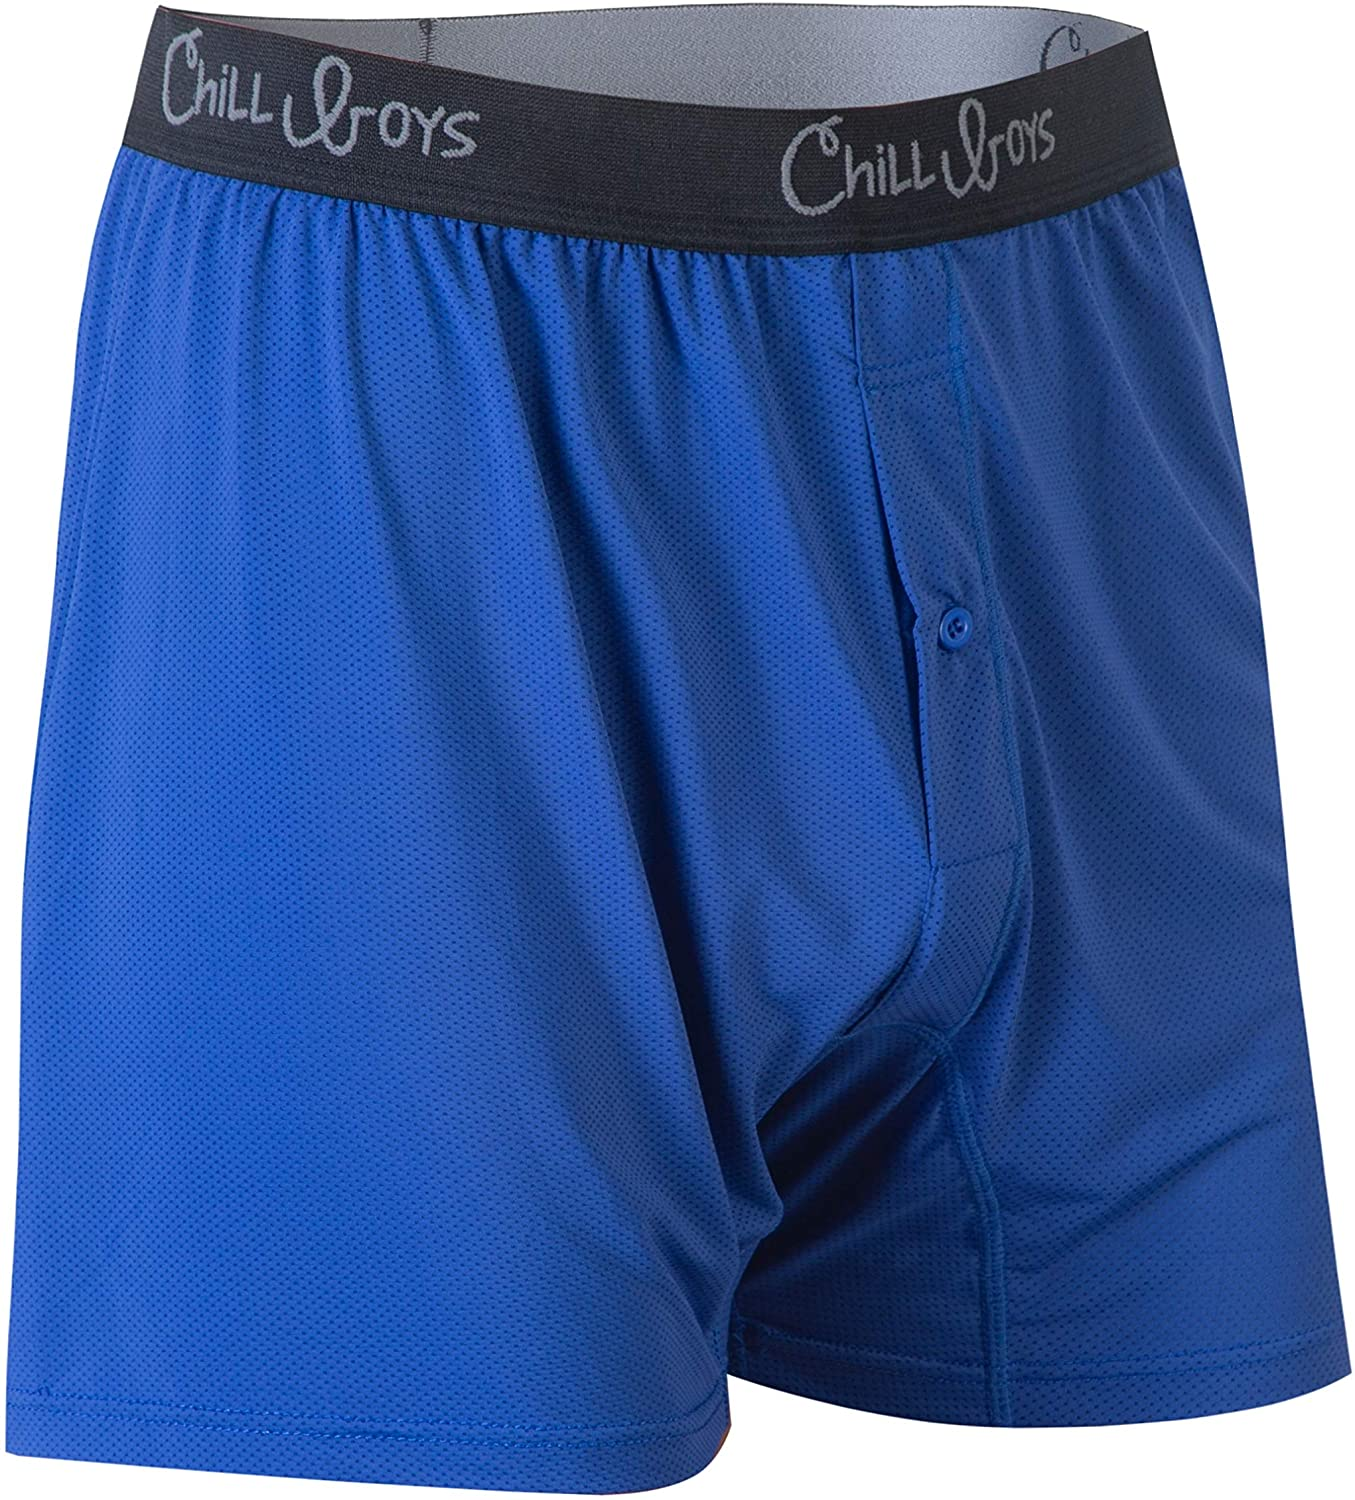 Chill Boys Cool Breathable Performance Boxers